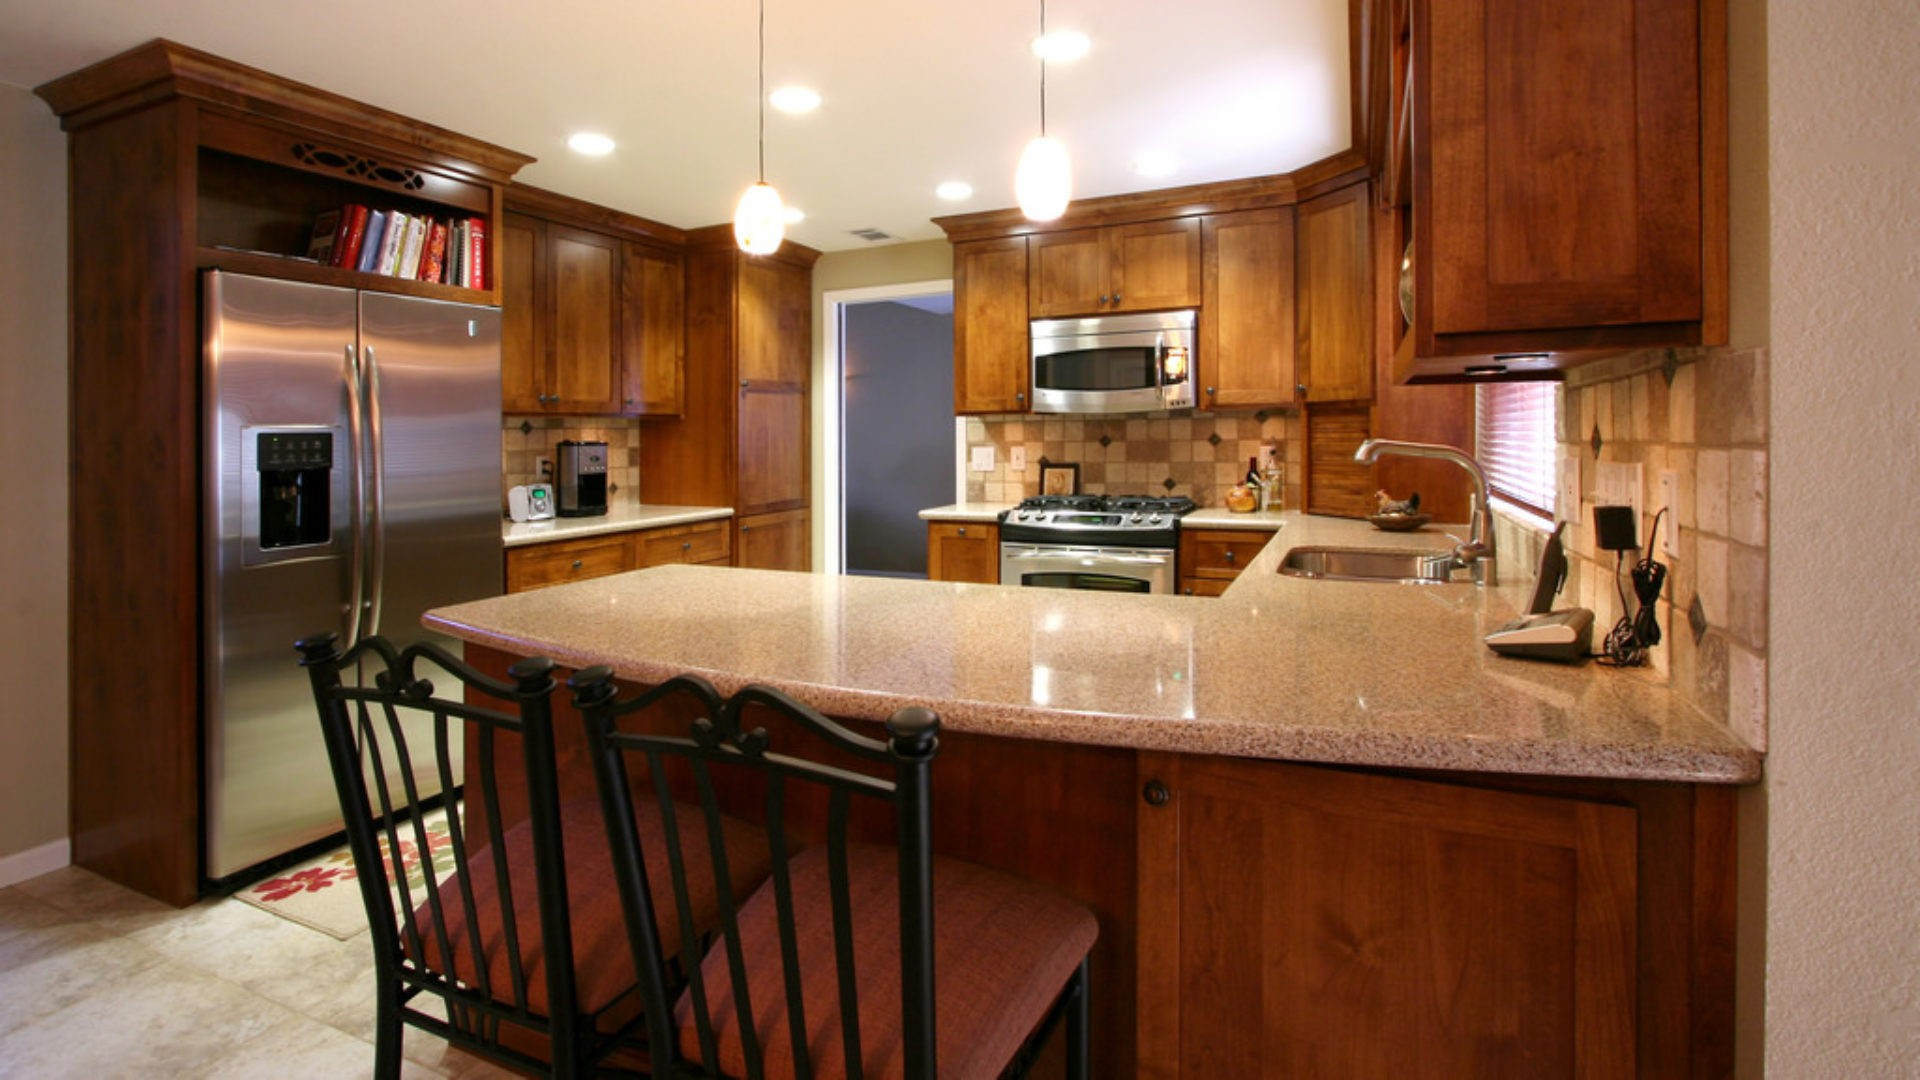 Chula Vista Custom Kitchen, Bath, & Cabinet Remodeling Services